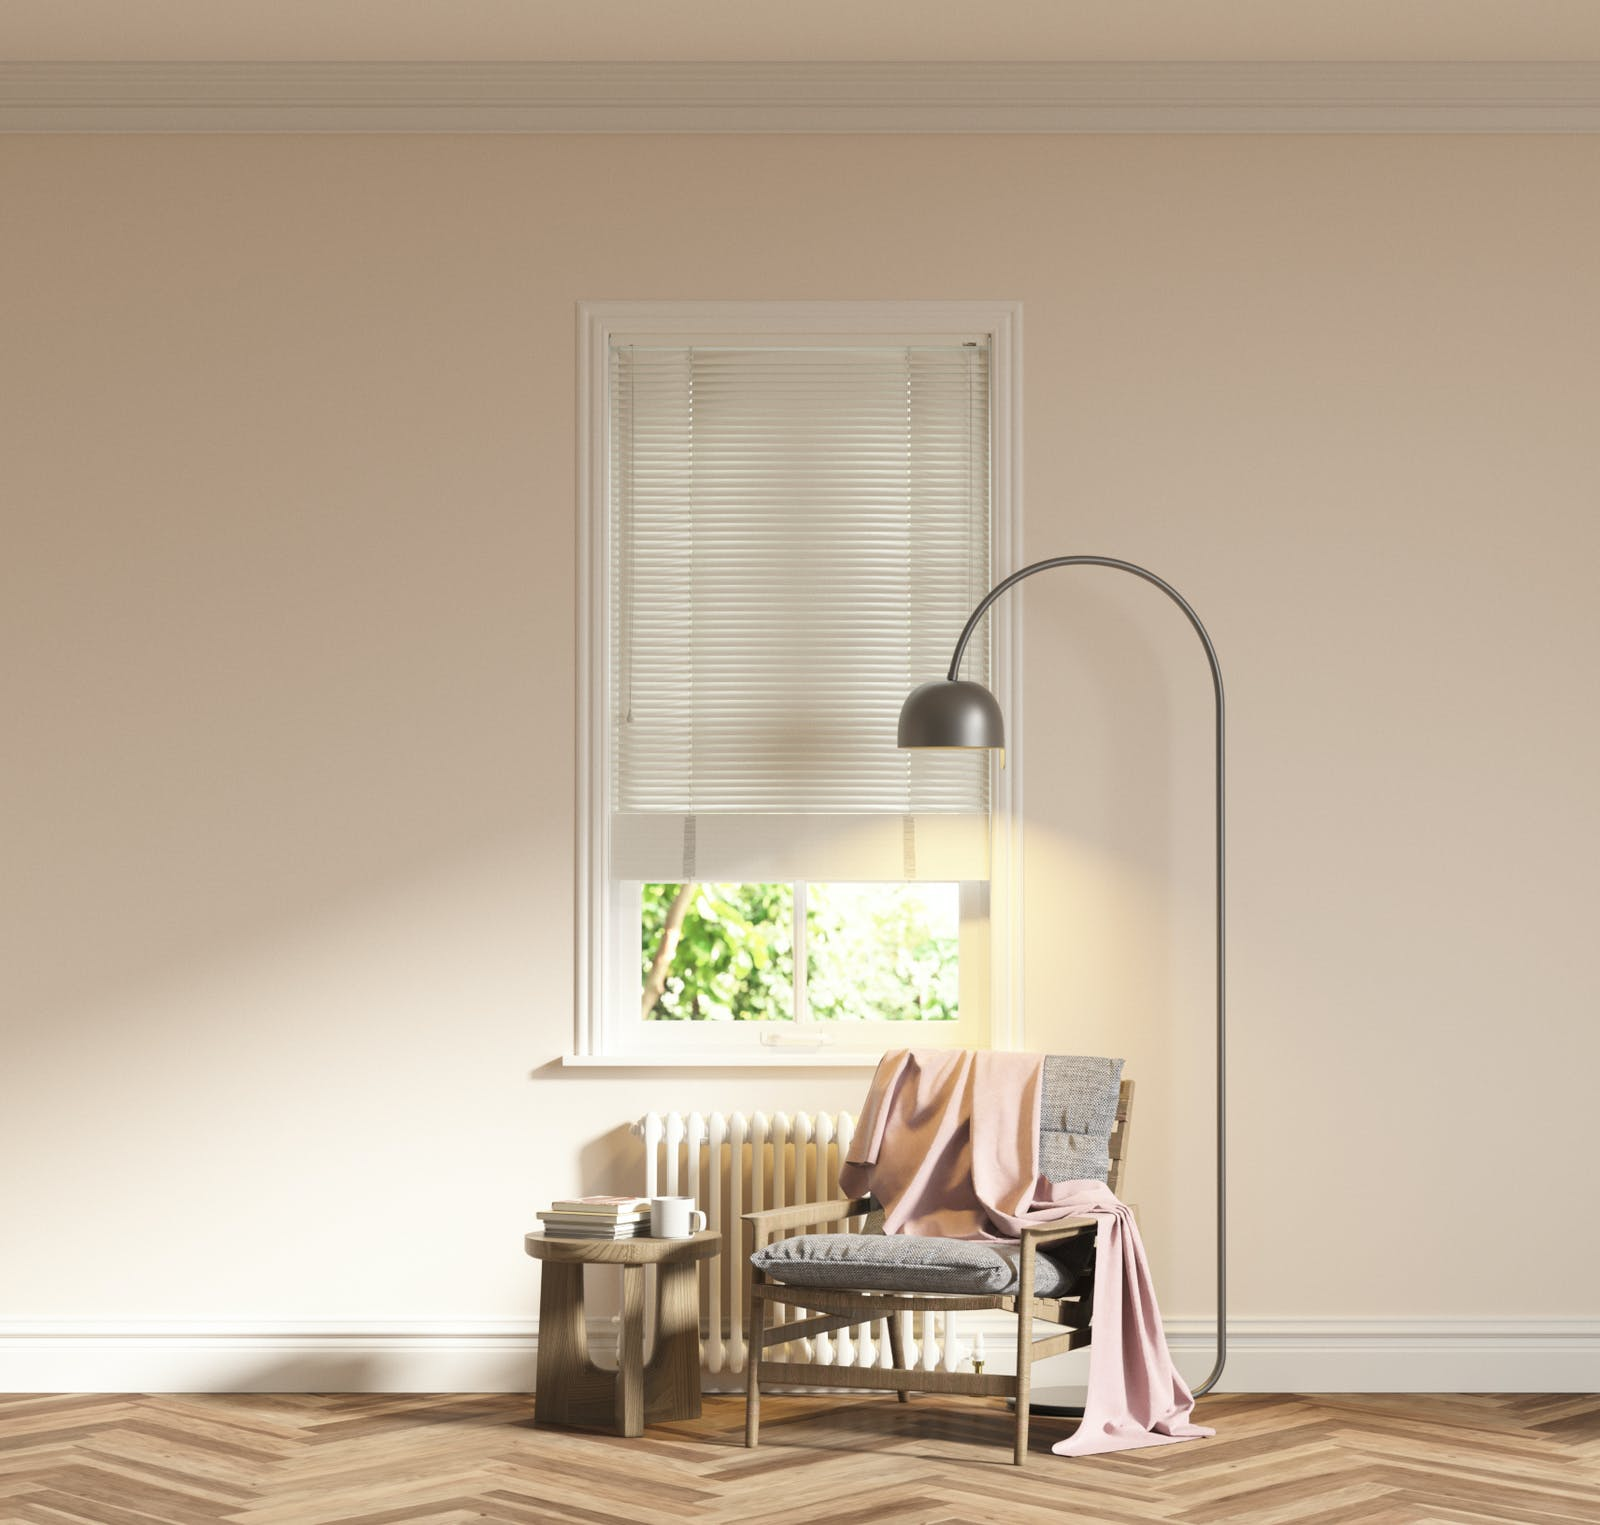 Image of living room with White 01 Venetian blinds and Pink 01 walls